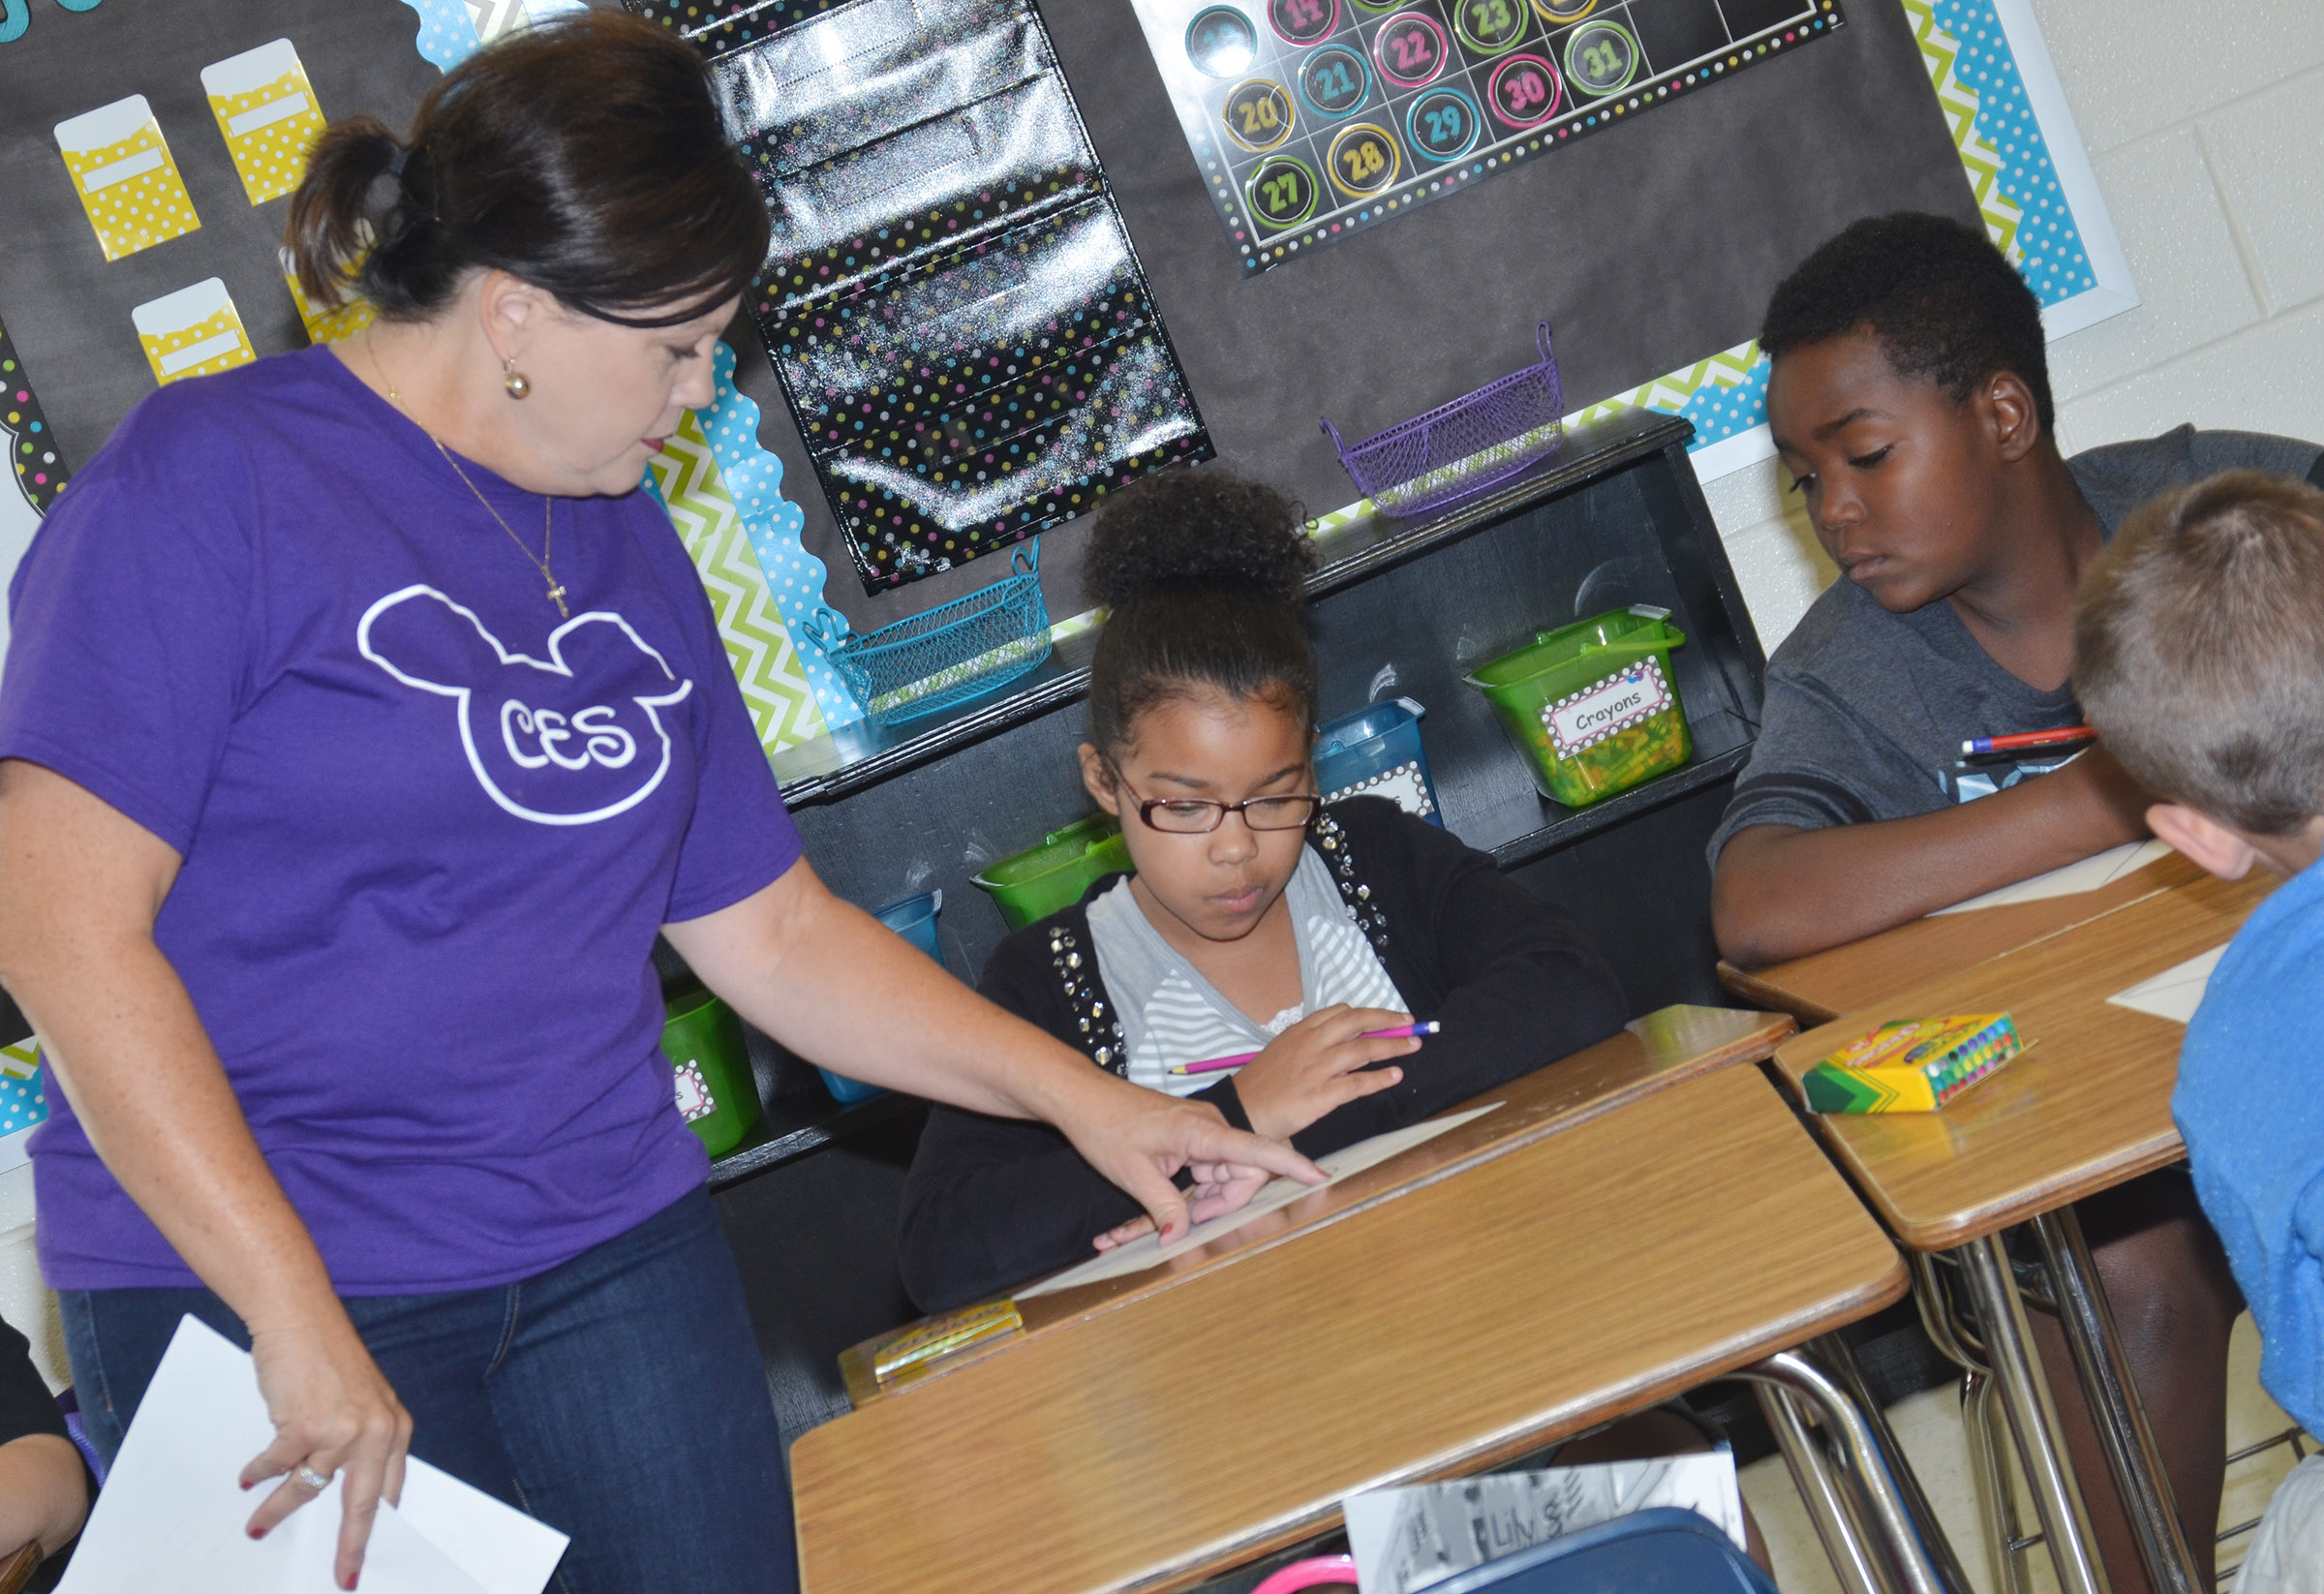 CES fifth-grade teacher Lisa Kearney helps Serenity Mings and Deason Smith with an assignment.